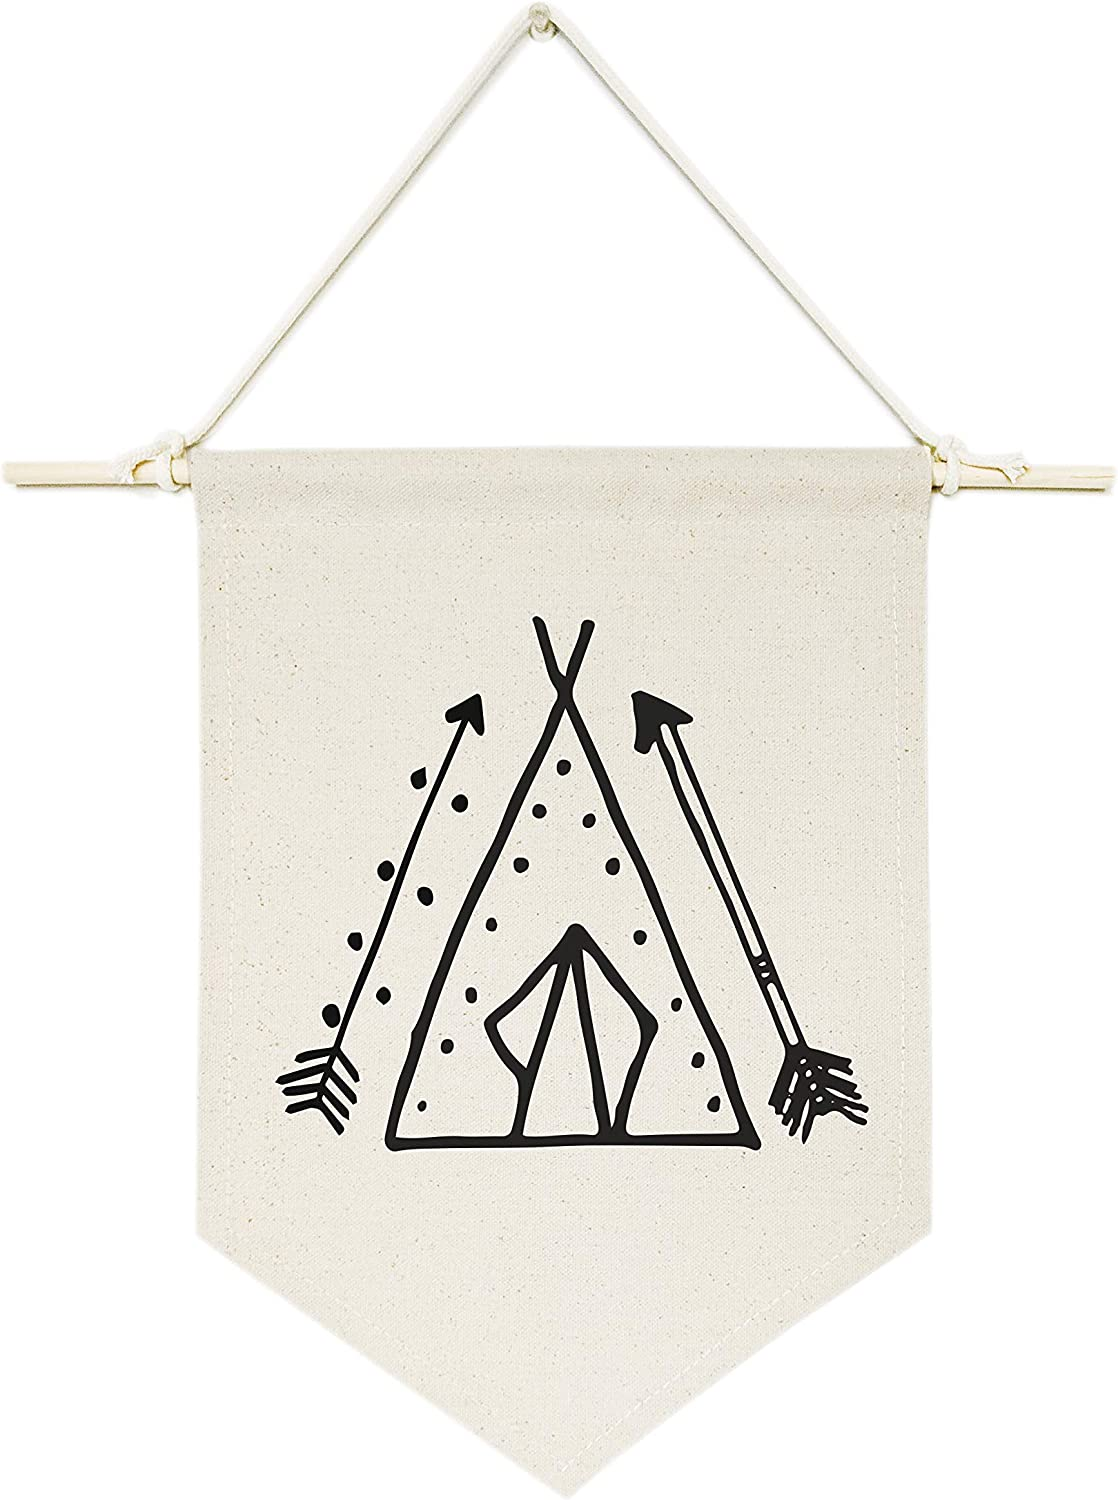 The Cotton & Canvas Co. Tee Pee Tribal Hanging Wall Canvas Banner for Baby Girl, Baby Boy, Nursery, Teen and Kids Room